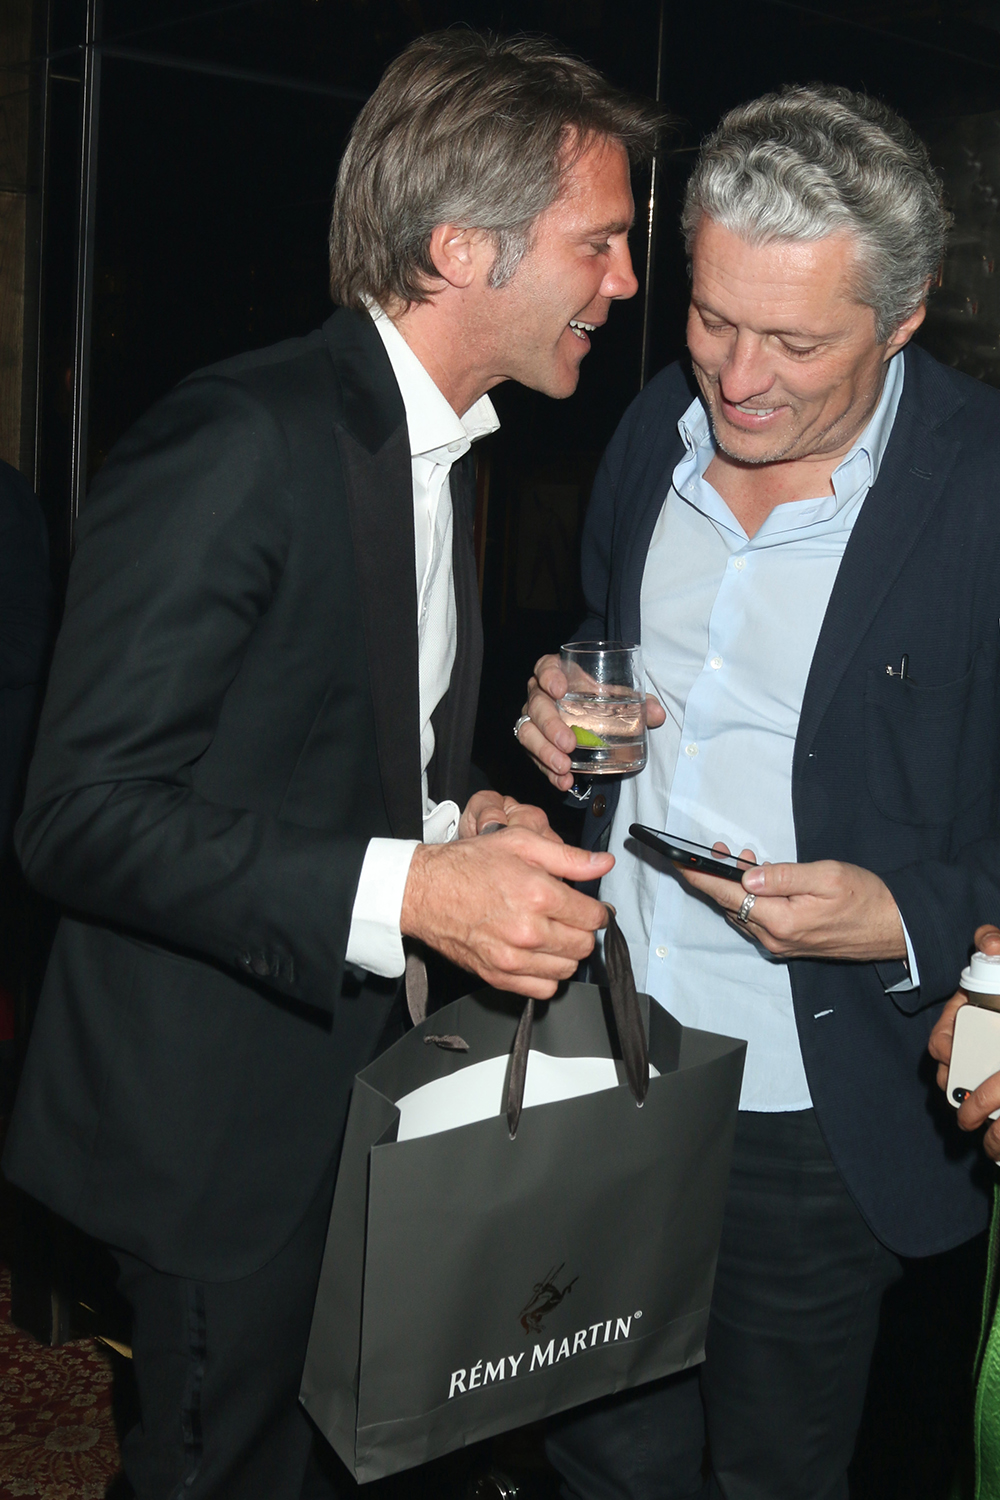 Prince Emanuele Filiberto di Savoia and Pierre Antoine Laduree celebrate Global Intuition x Remy Martin party at Raspoutine in West Hollywood hosted by YiZhou